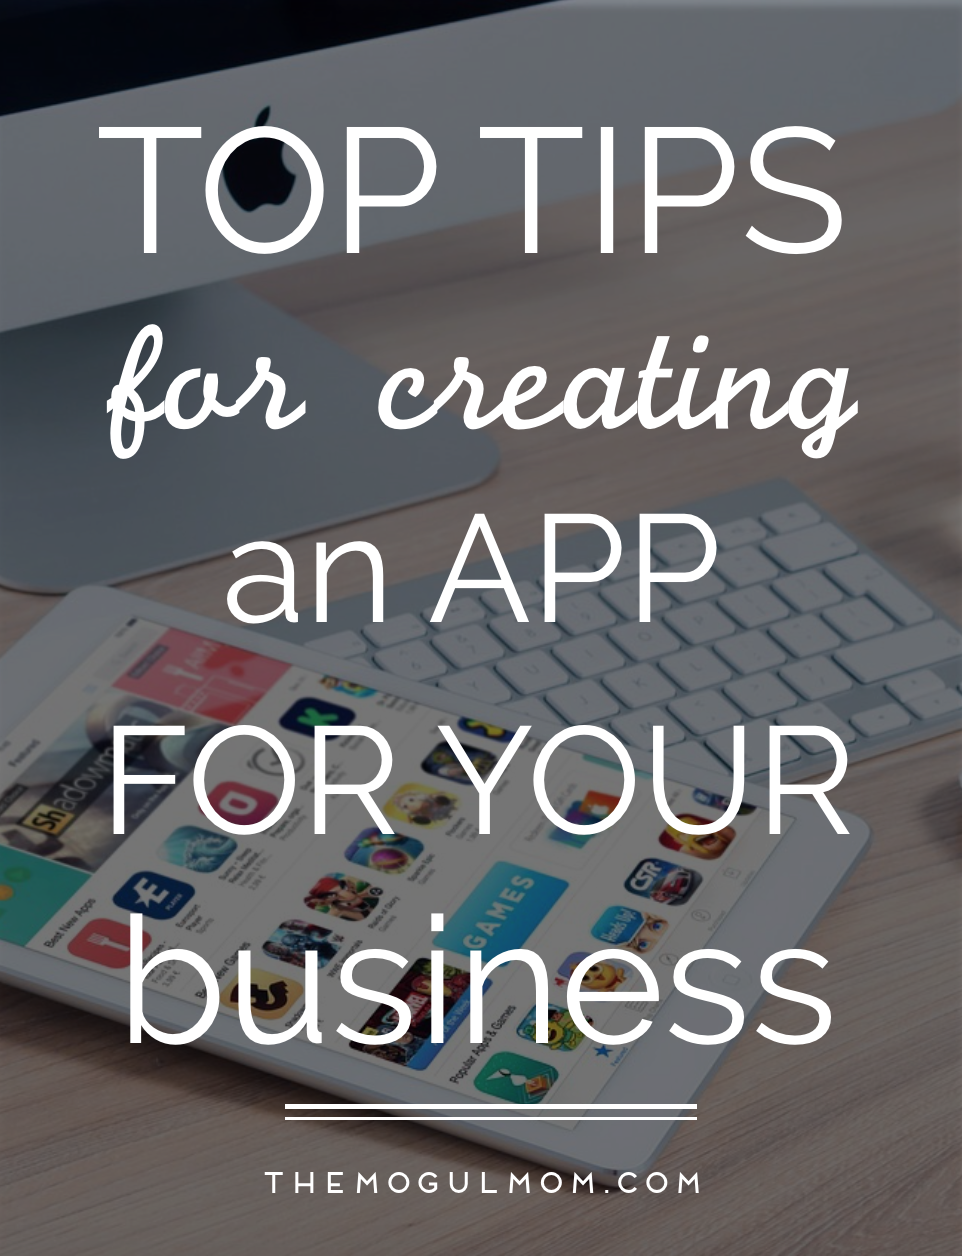 Top Tips for Creating an App for Your Business